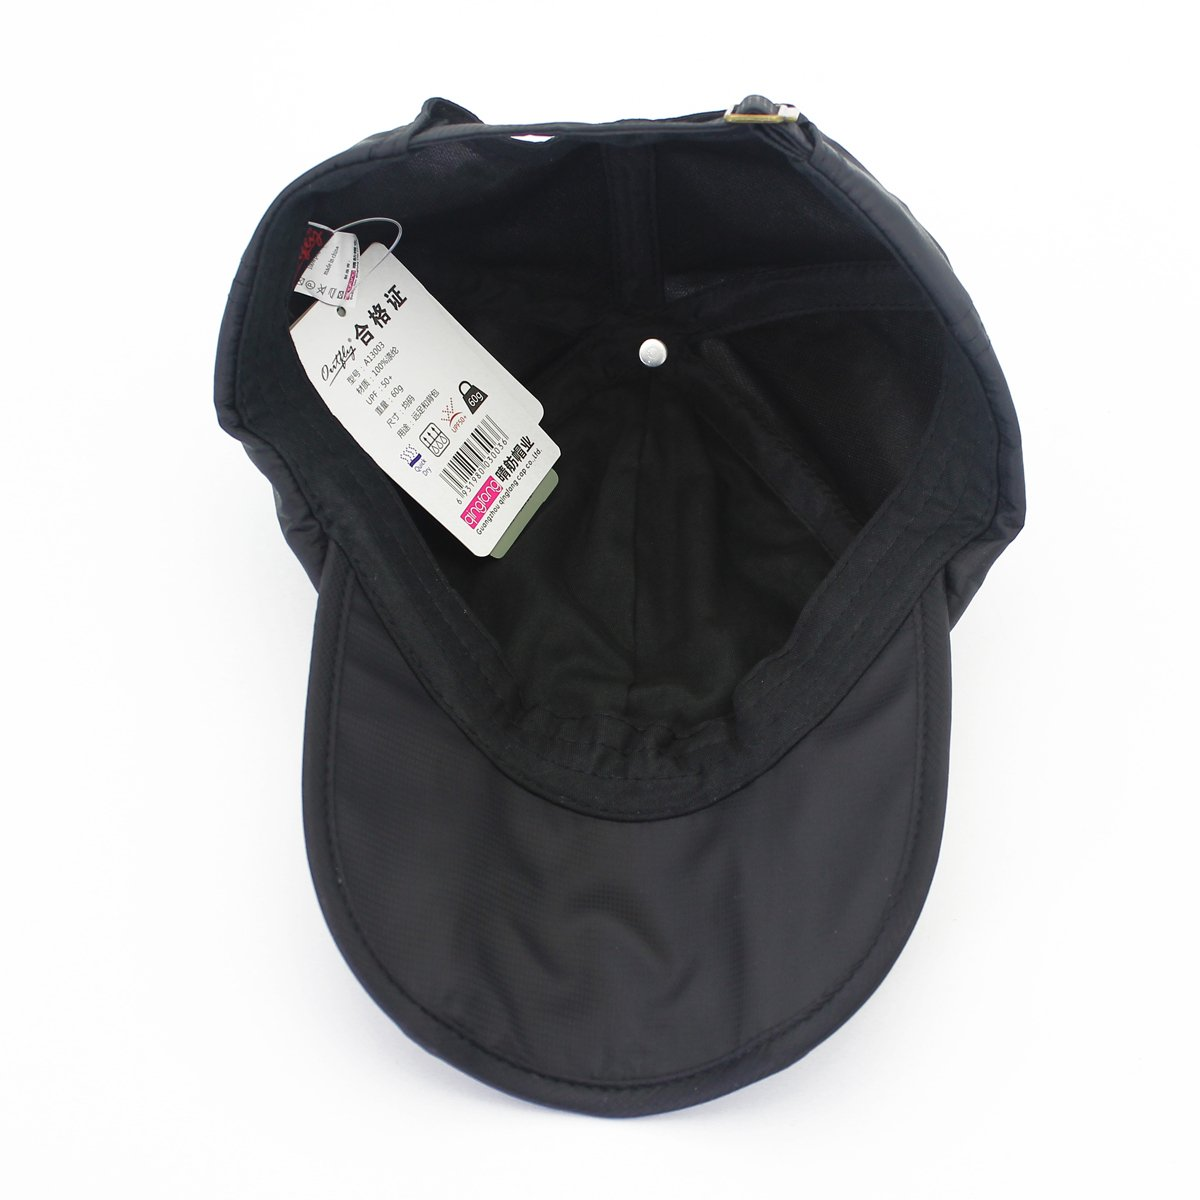 outfly Foldable Baseball Cap Summer Running Cap for Men and Women Gift Hat Storage Bag